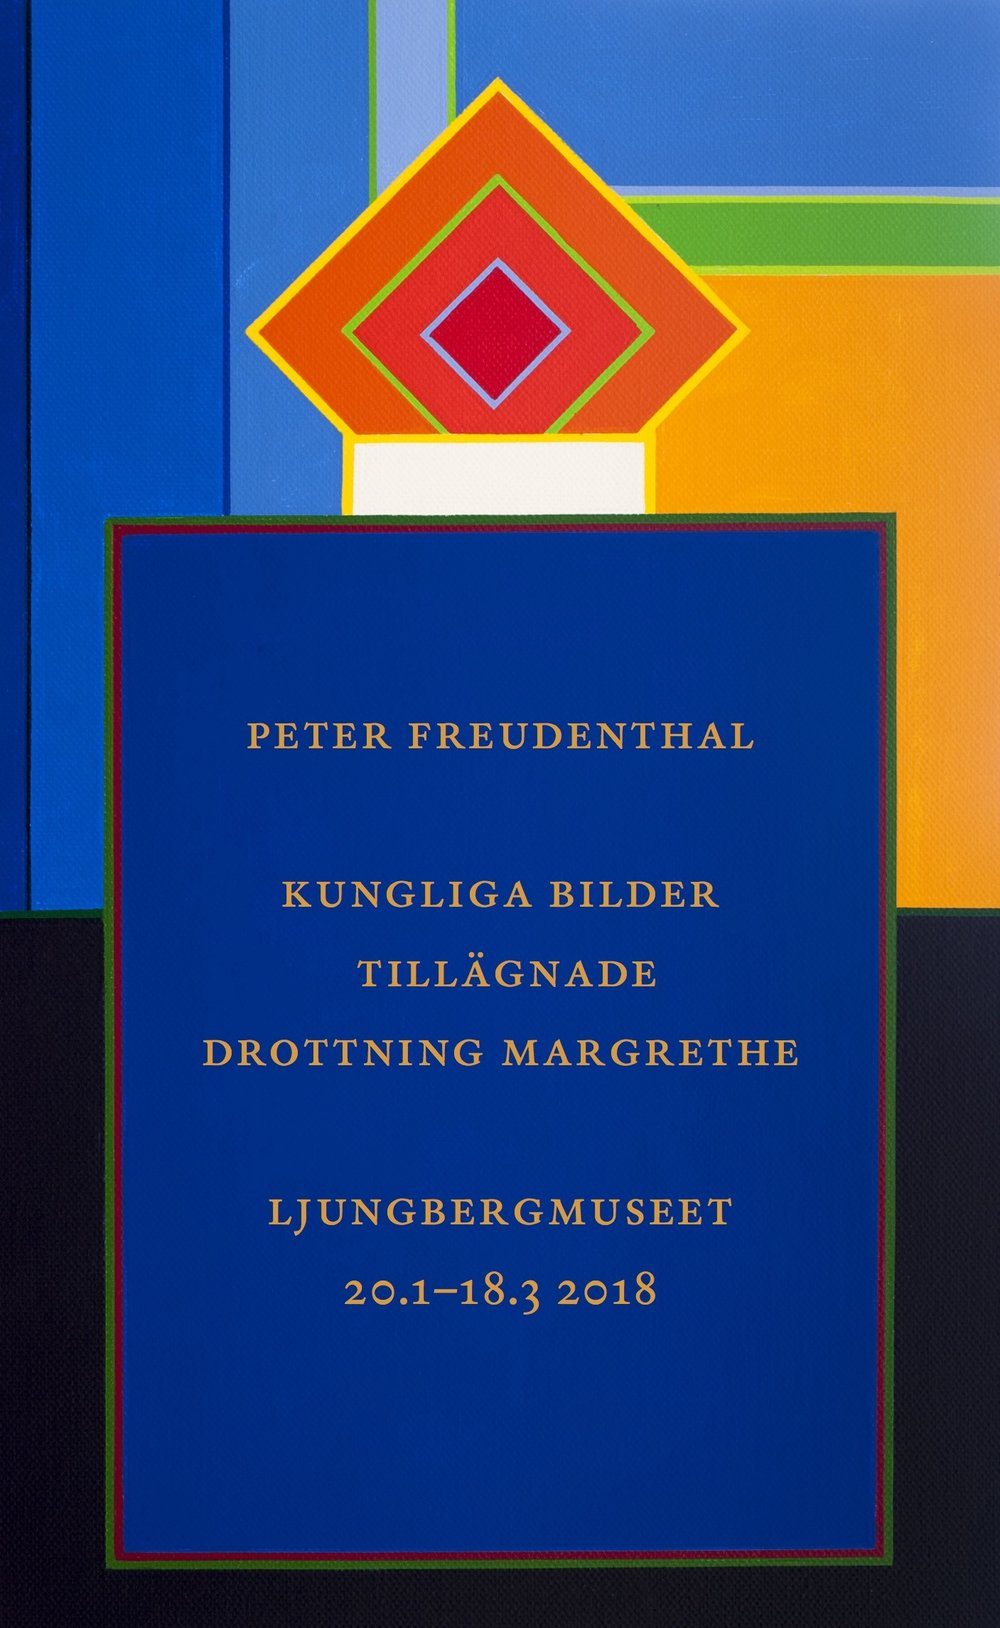 Peter-Freudenthals-vernissagekortoriginal-.jpg